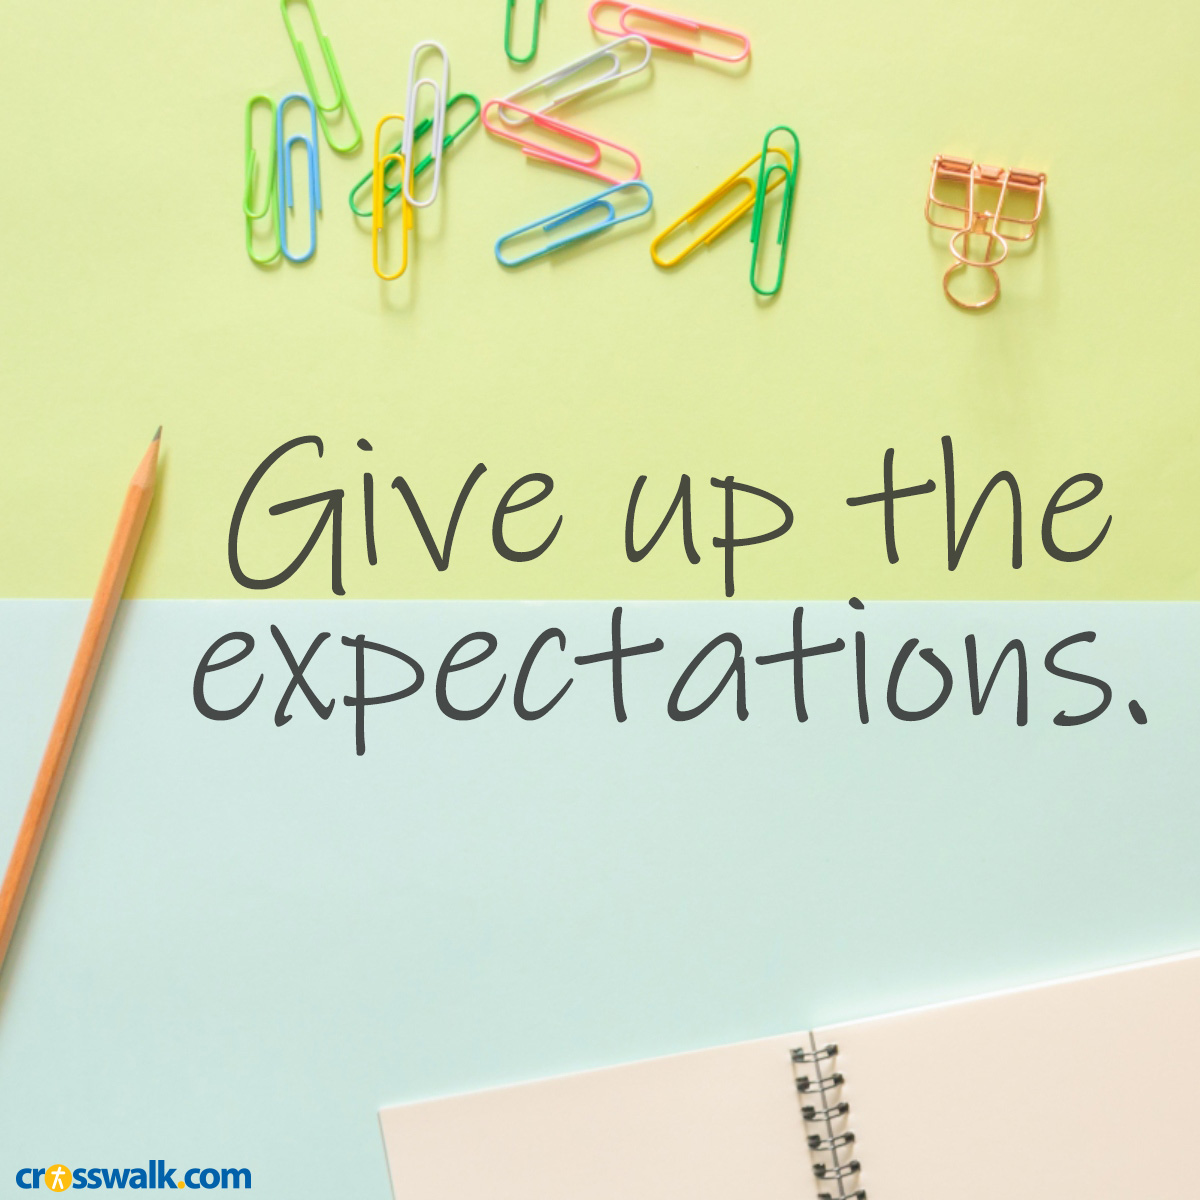 give up the expectations inspirational image